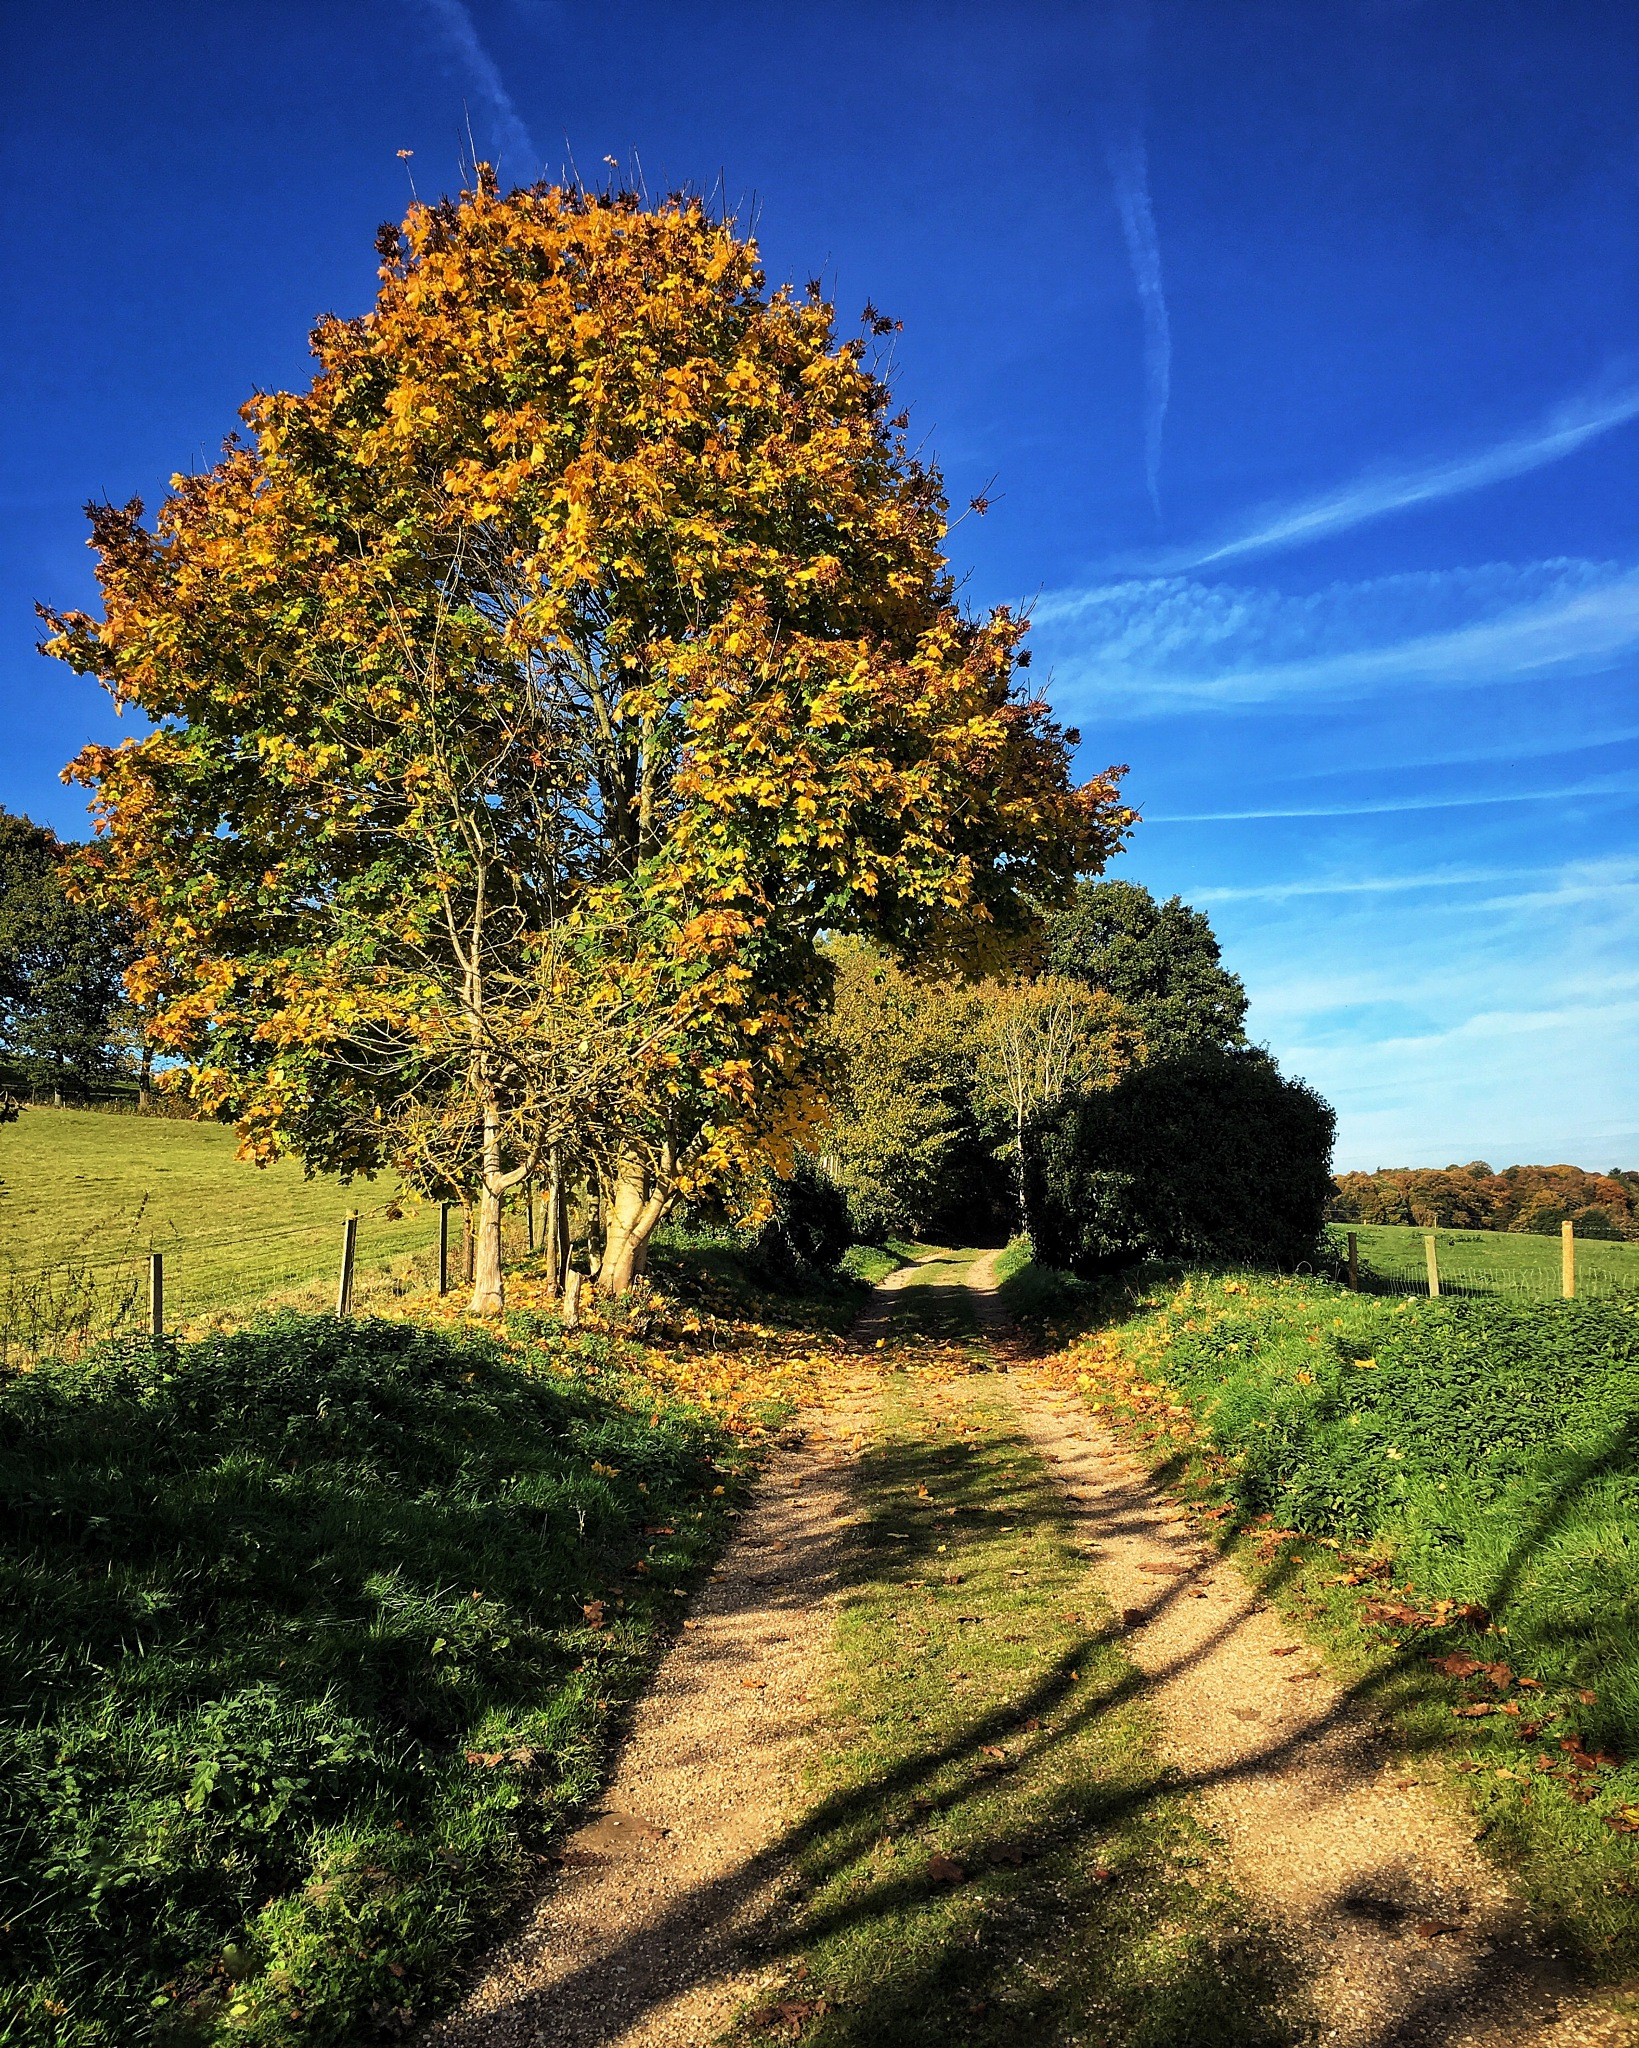 Perfect autumn day in the Surrey countryside  by beaniedee